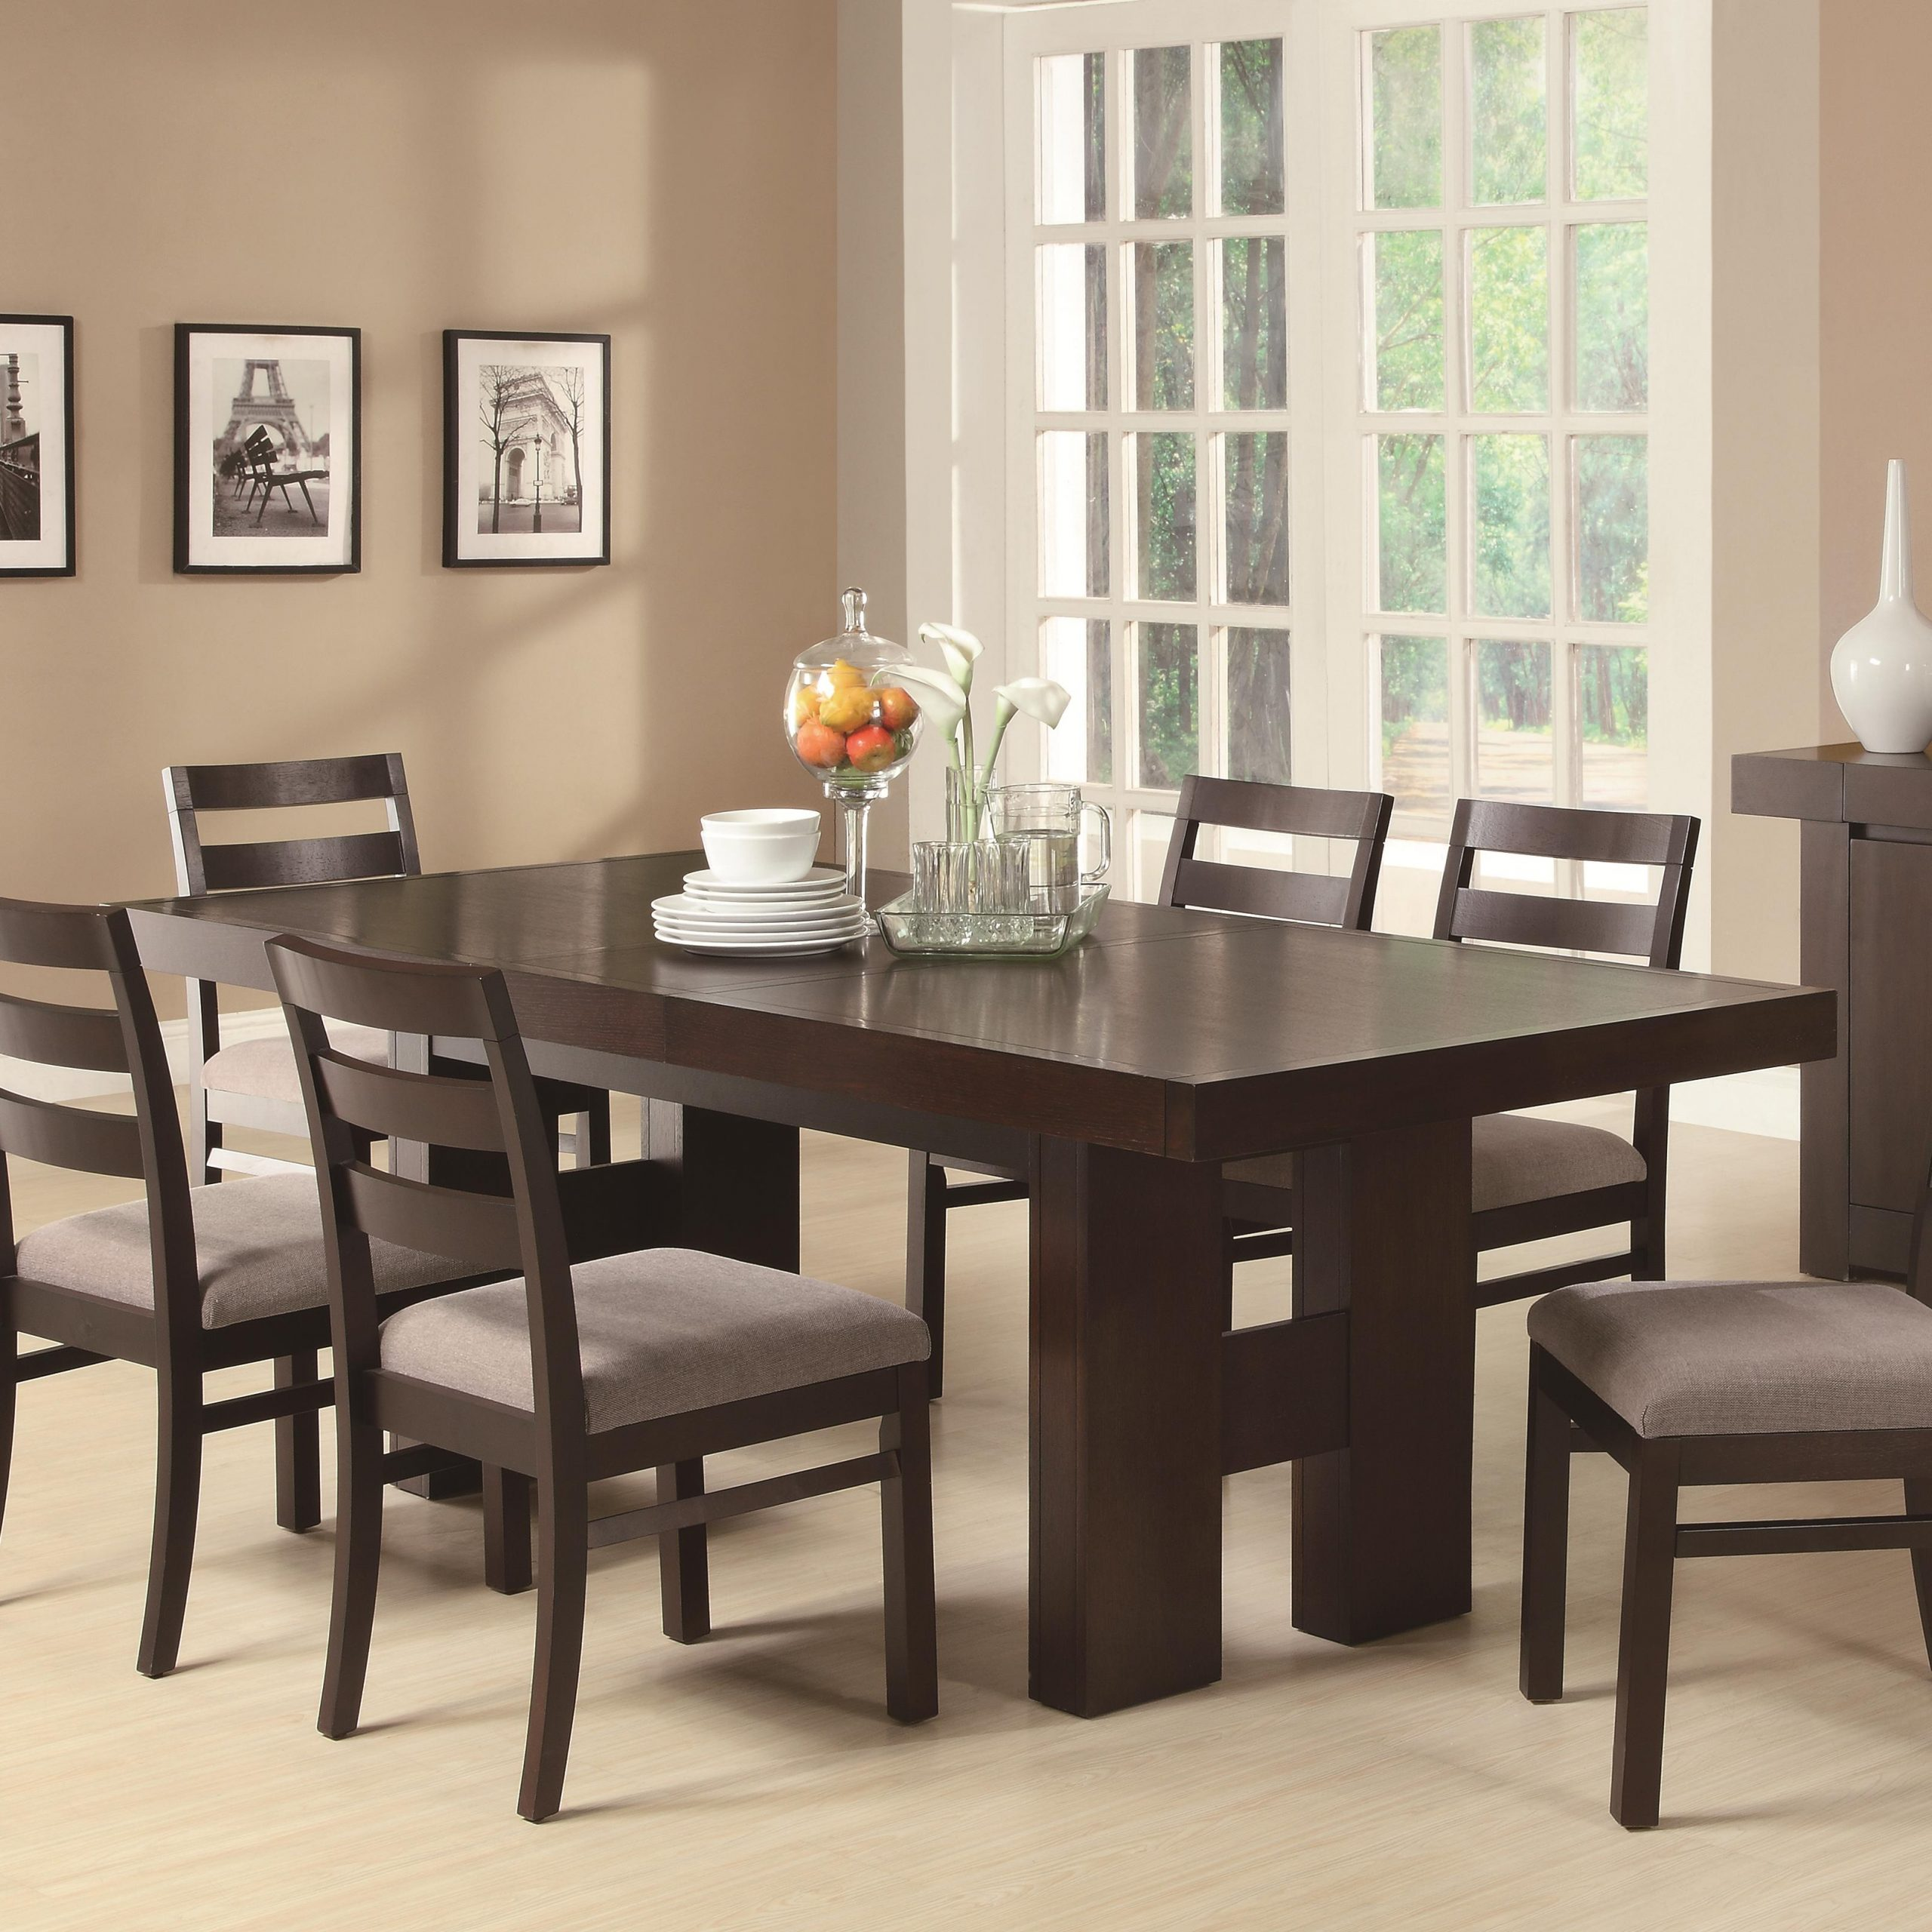 The Classy For Current Cappuccino Finish Wood Classic Casual Dining Tables (View 21 of 25)